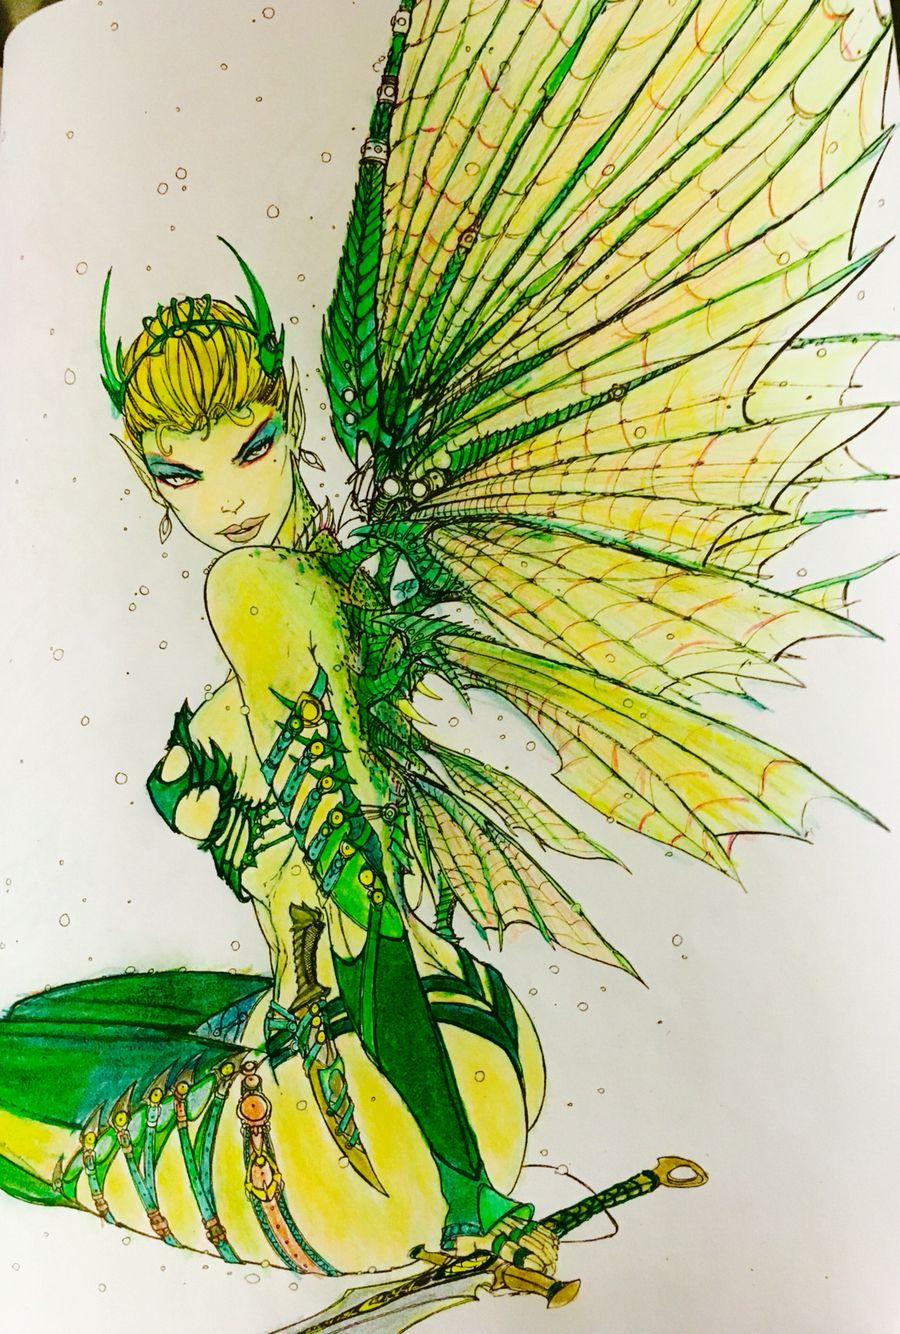 Tinker bell Disney coloring page color pencil | Art | Pinterest ...